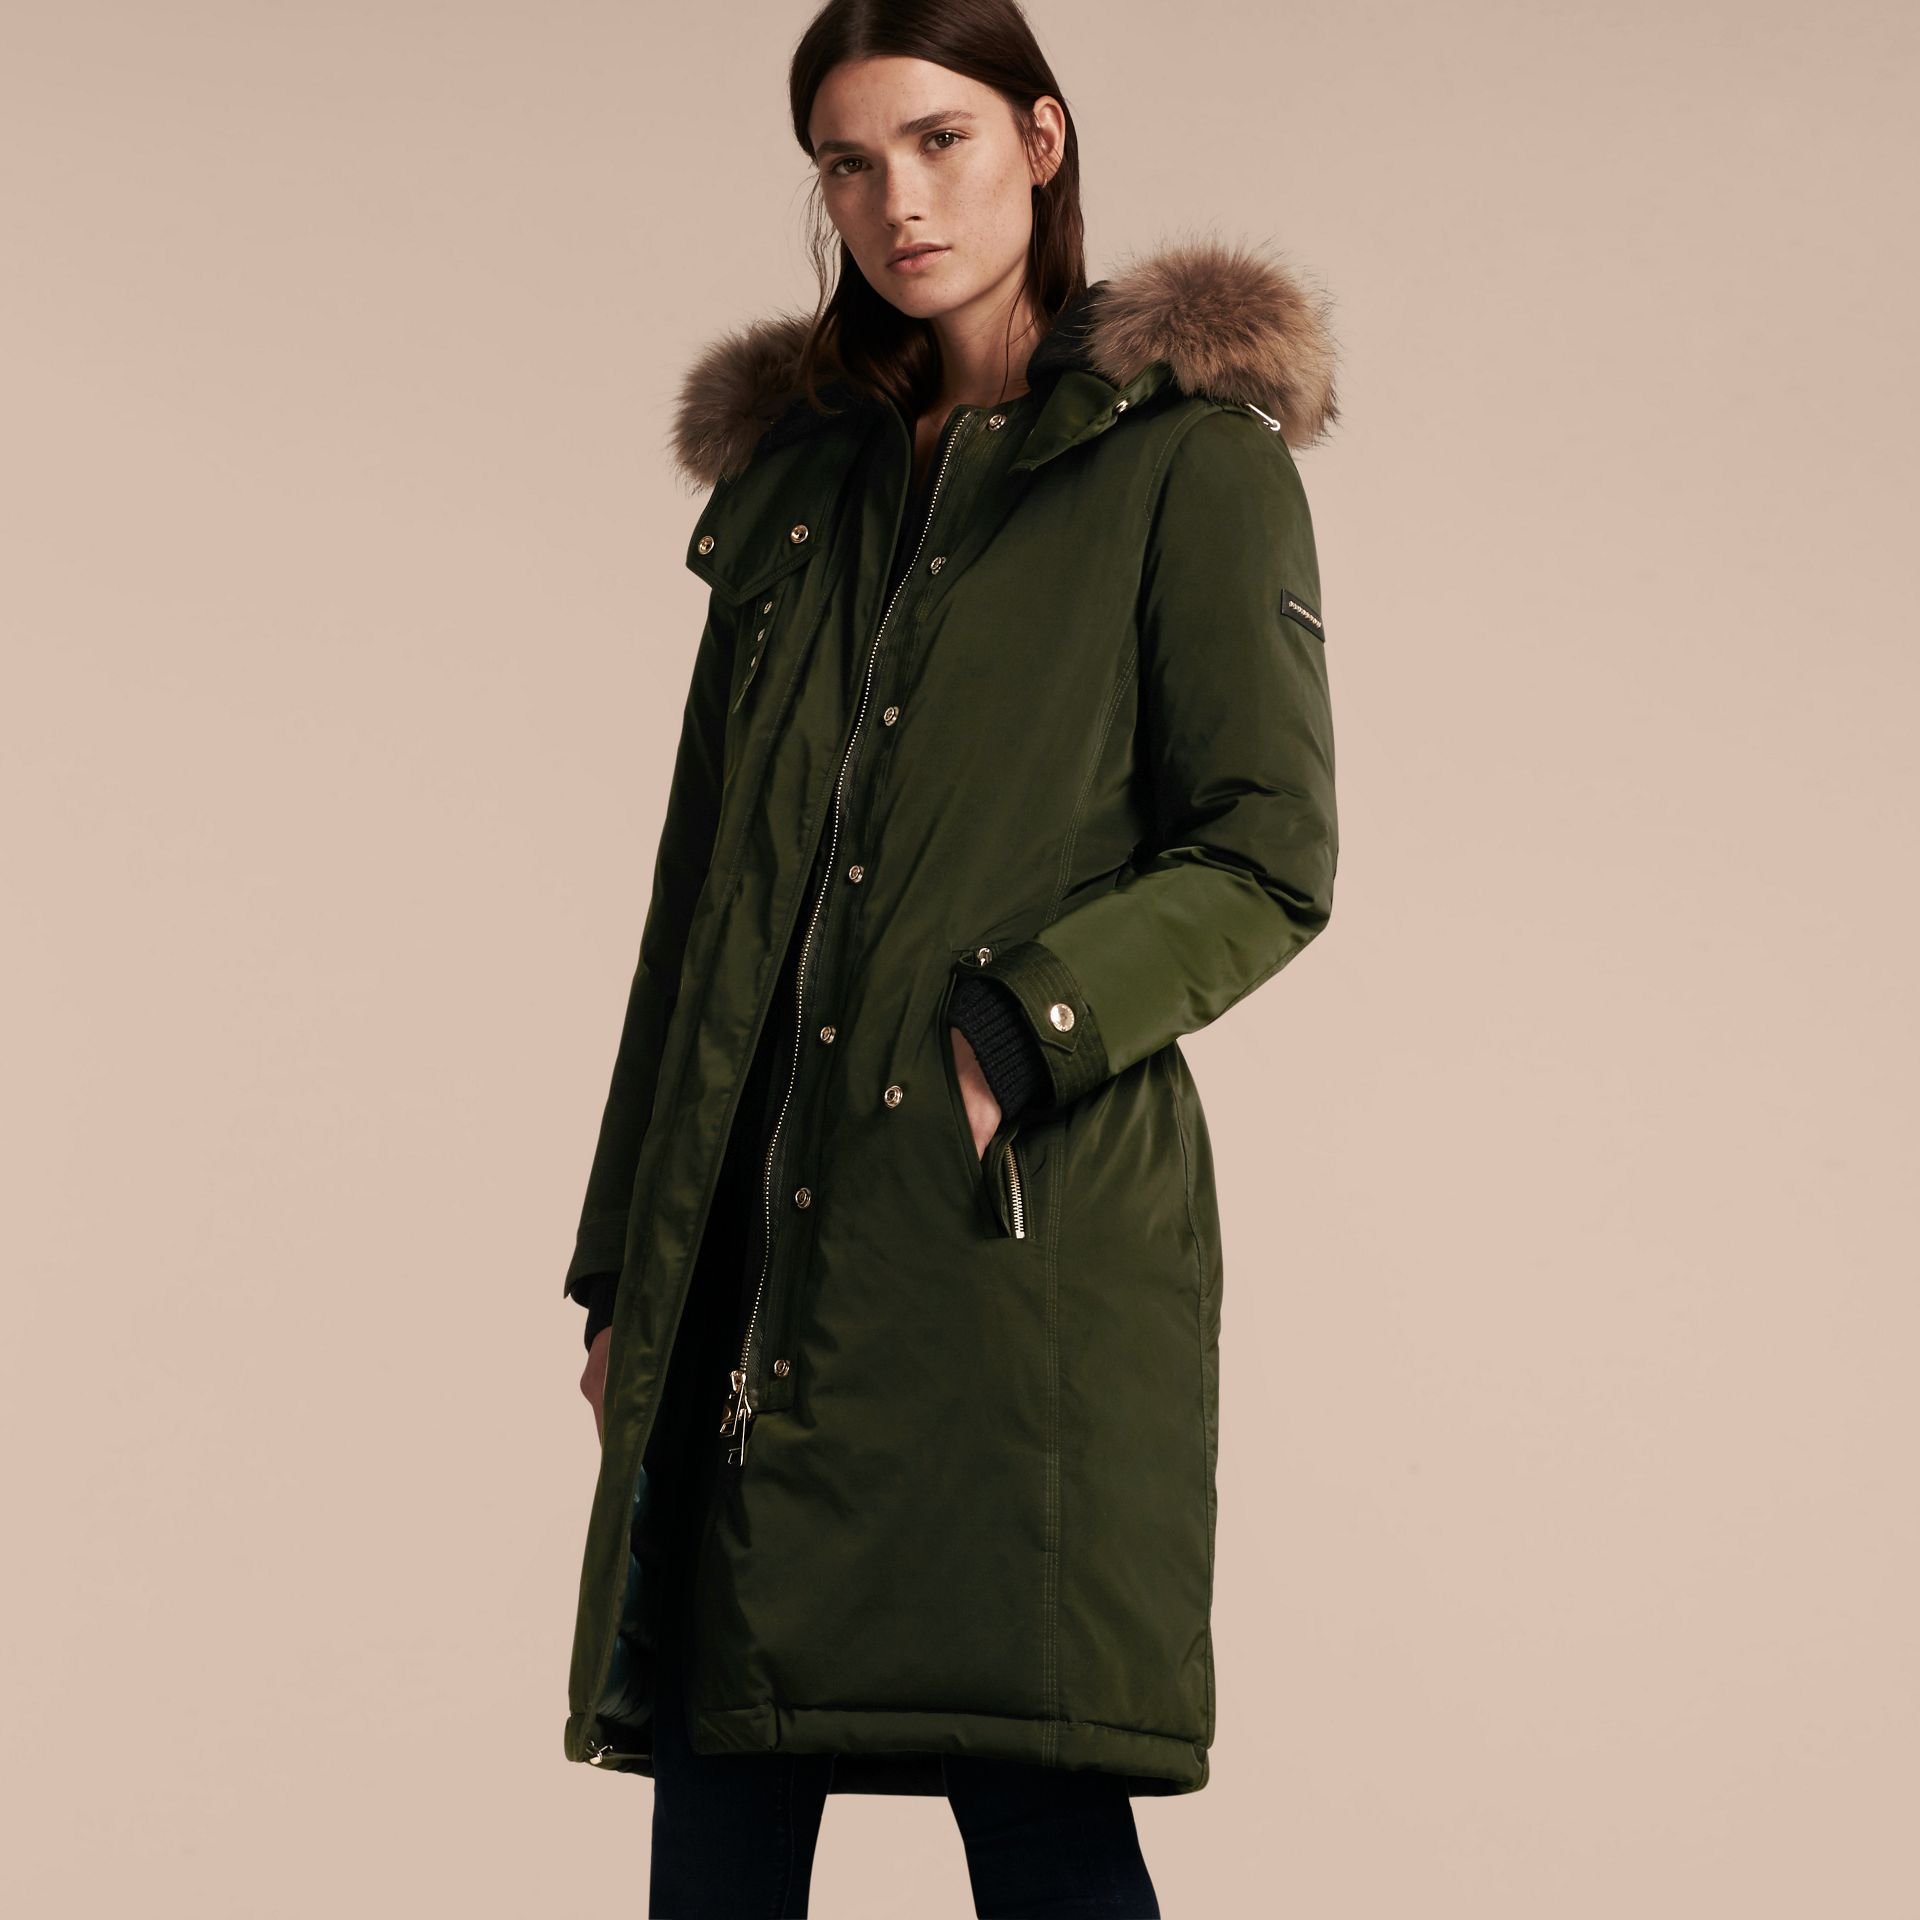 Dark cedar green Down-filled Parka Coat with Detachable Fur Trim Dark Cedar Green - gallery image 7